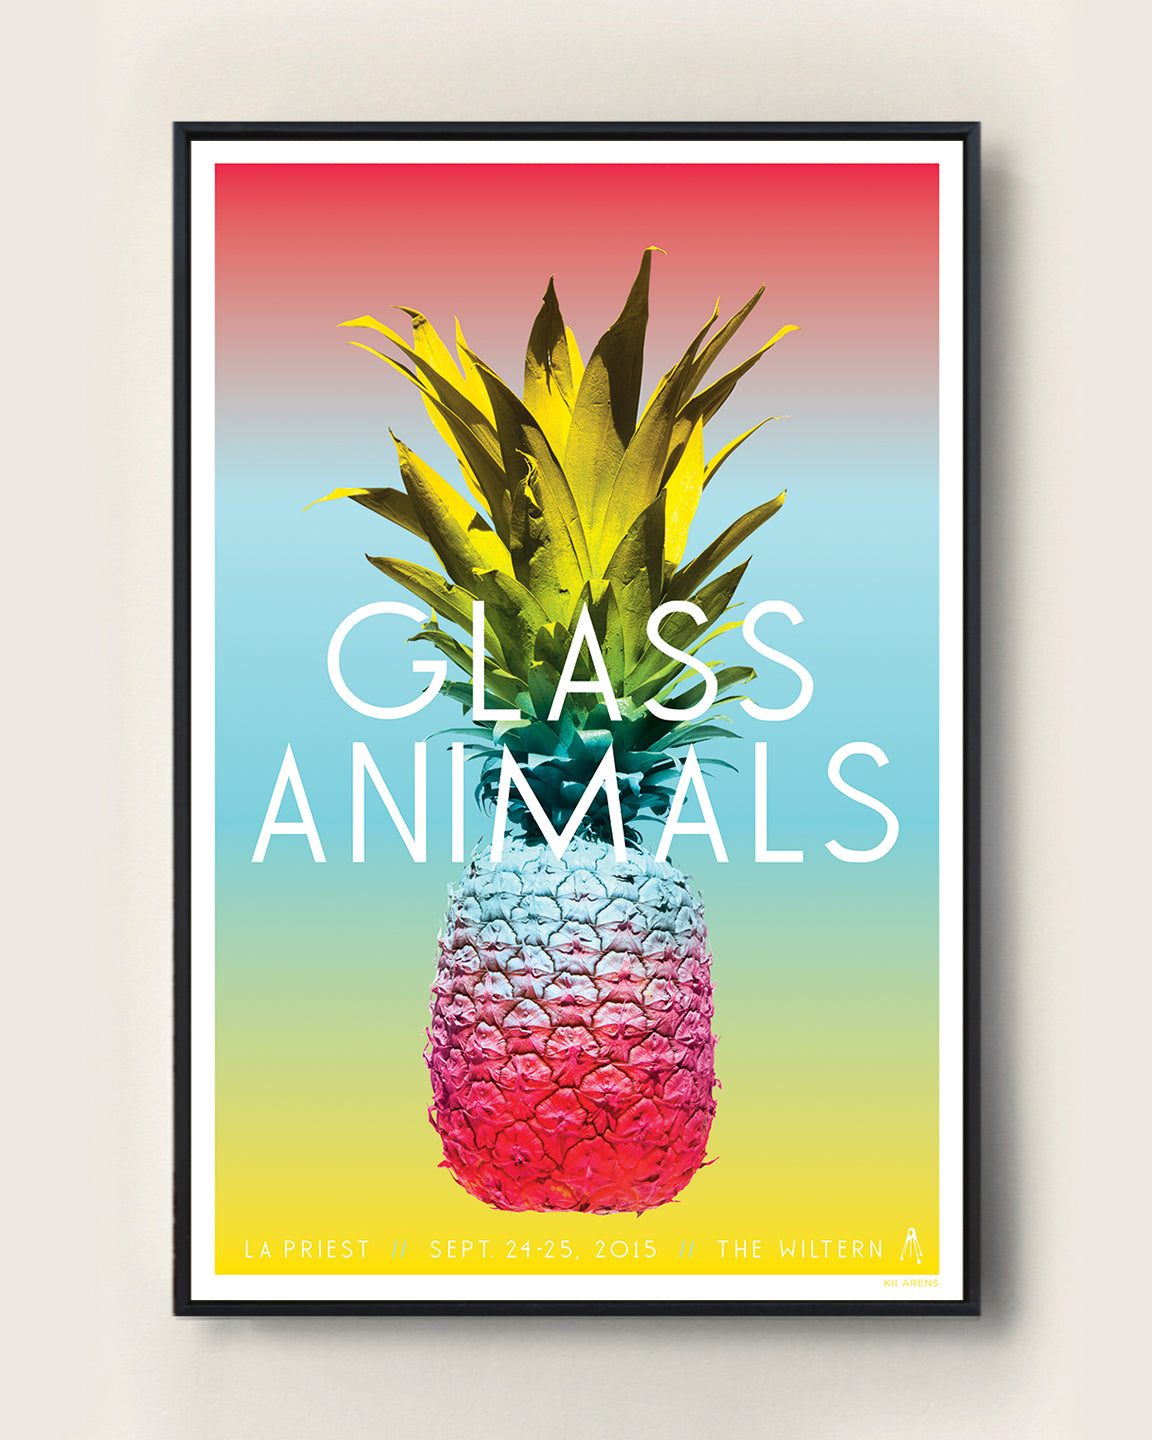 GLASS ANIMALS - LOS ANGELES, CA